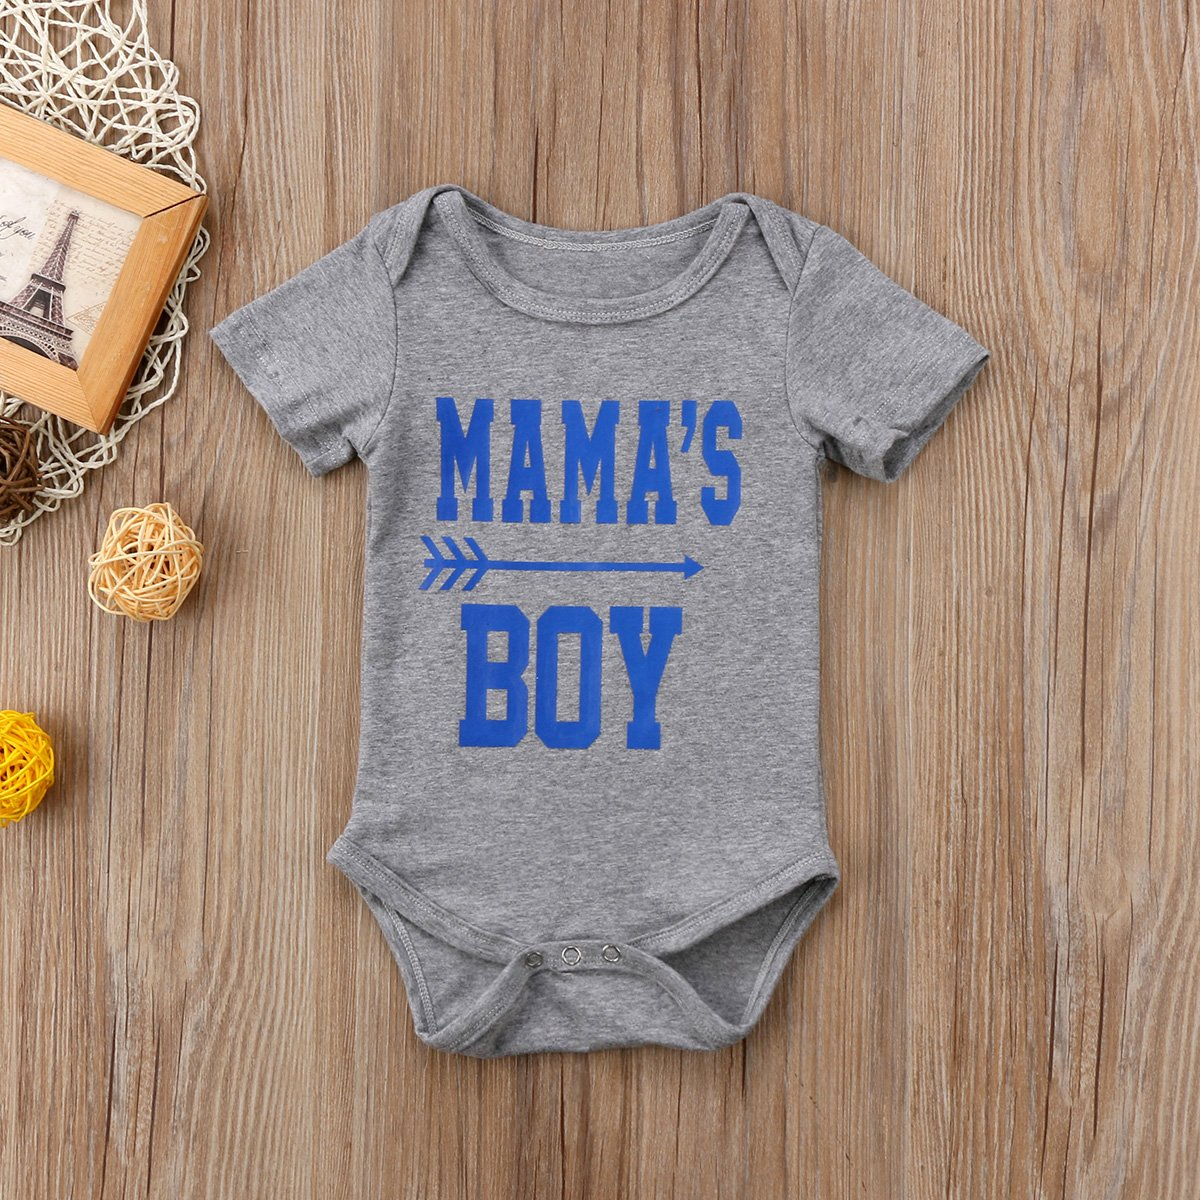 Newborn Kid Boy Girl Bodysuits Mamas Boy Summer Baby Jumpsuit Letter Clothes Cotton 2pcs Outfits for Boy 0-18Months